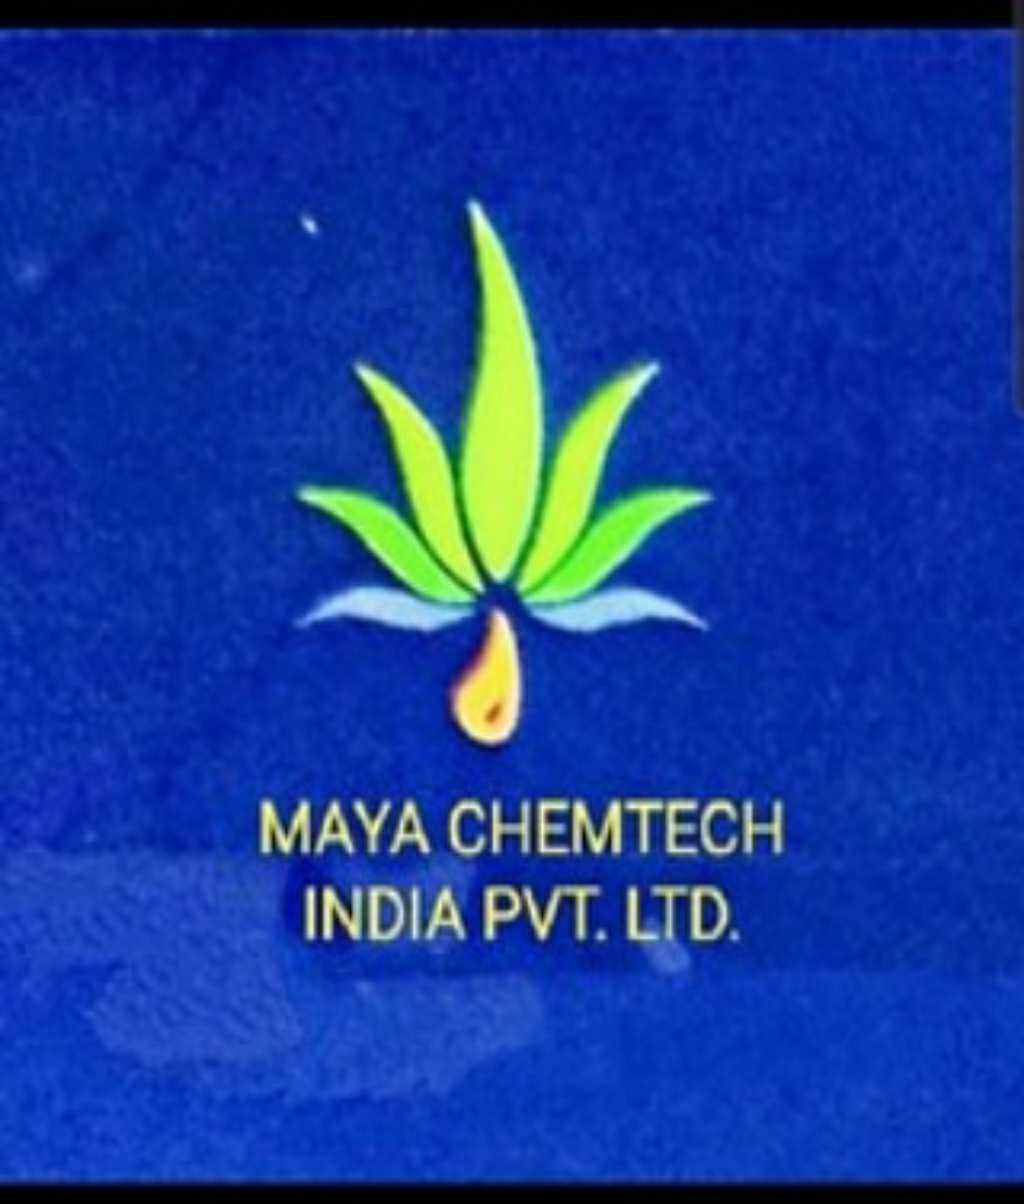 MAYA CHEMTECH INDIA PRIVATE LIMITED